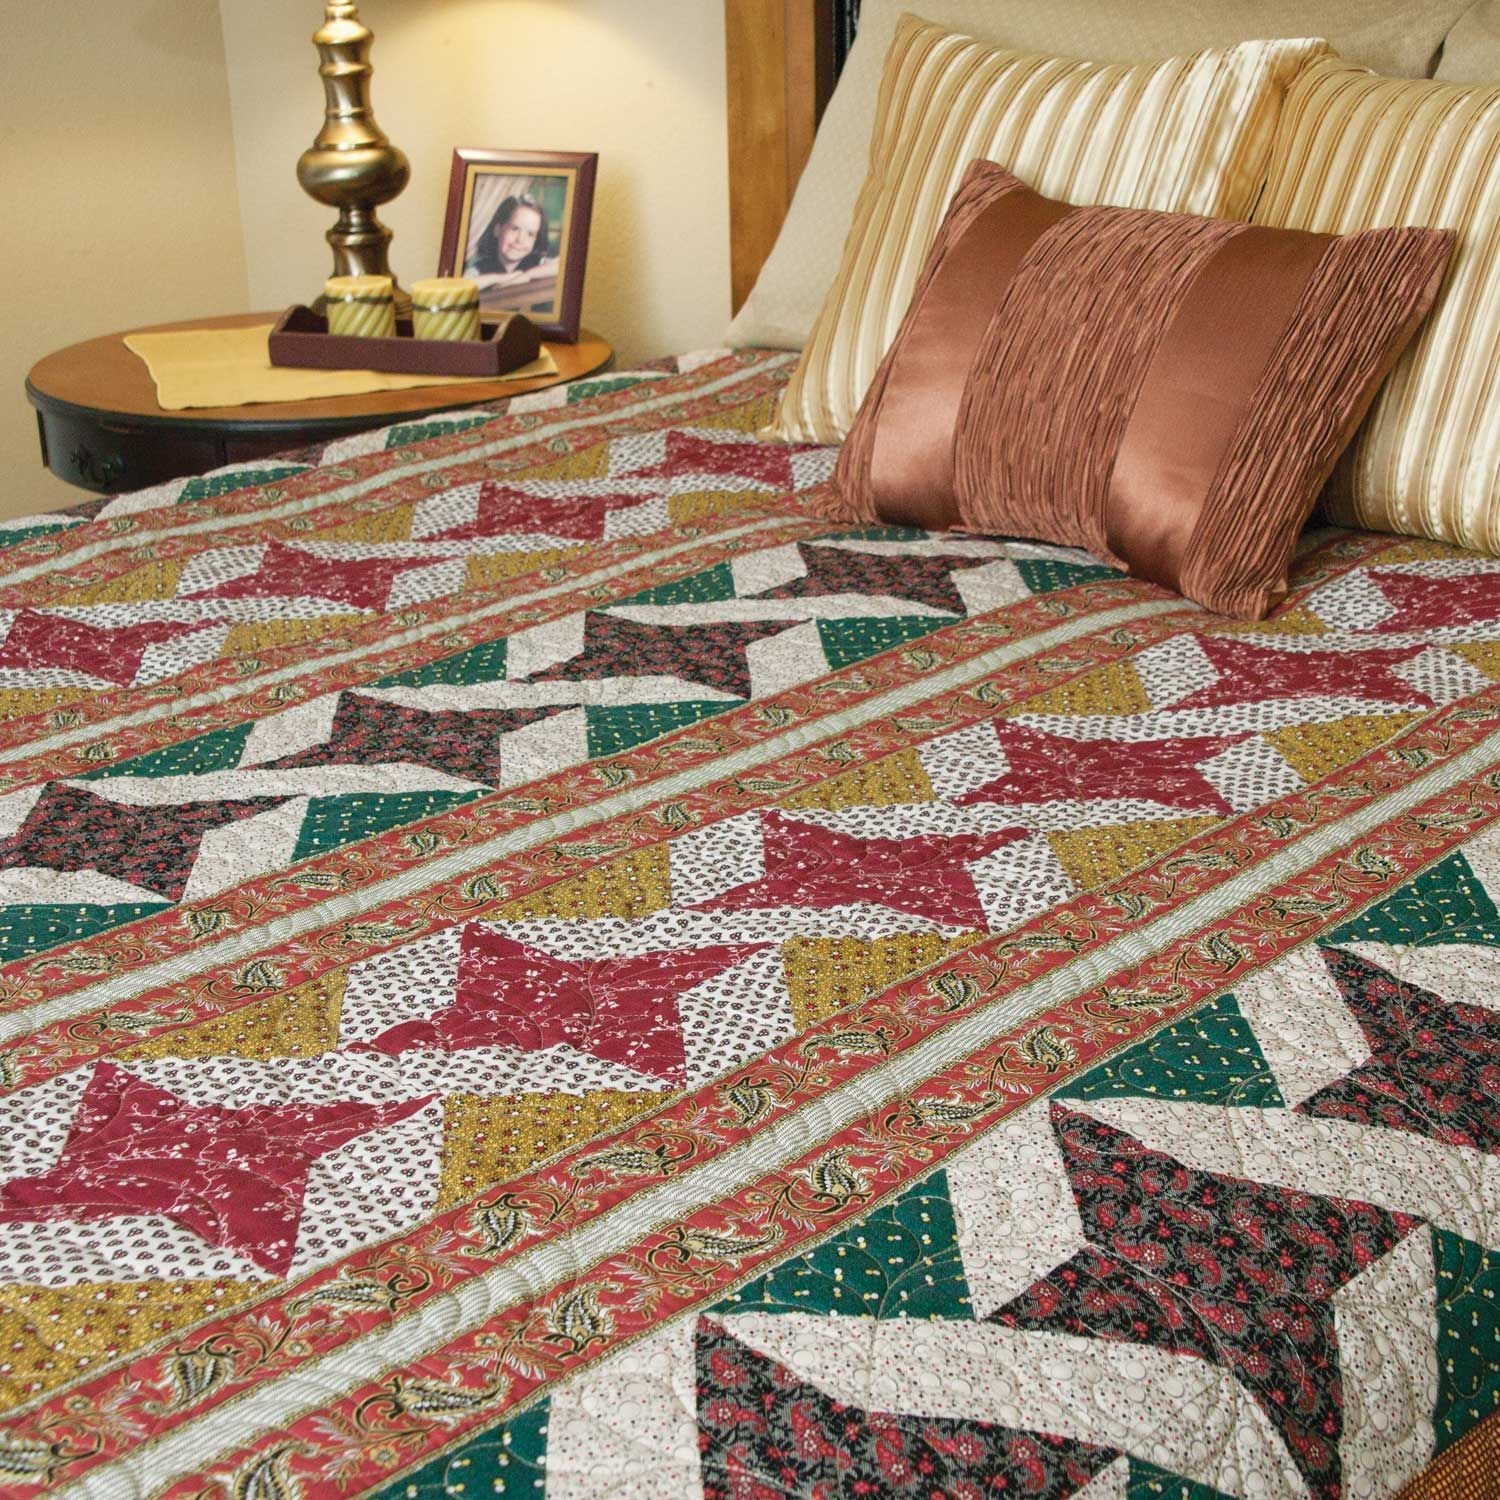 it i img farfalle tag queen sized first smaller quilts size have ever quilt pattern done made finally the be when that is than will orginal this